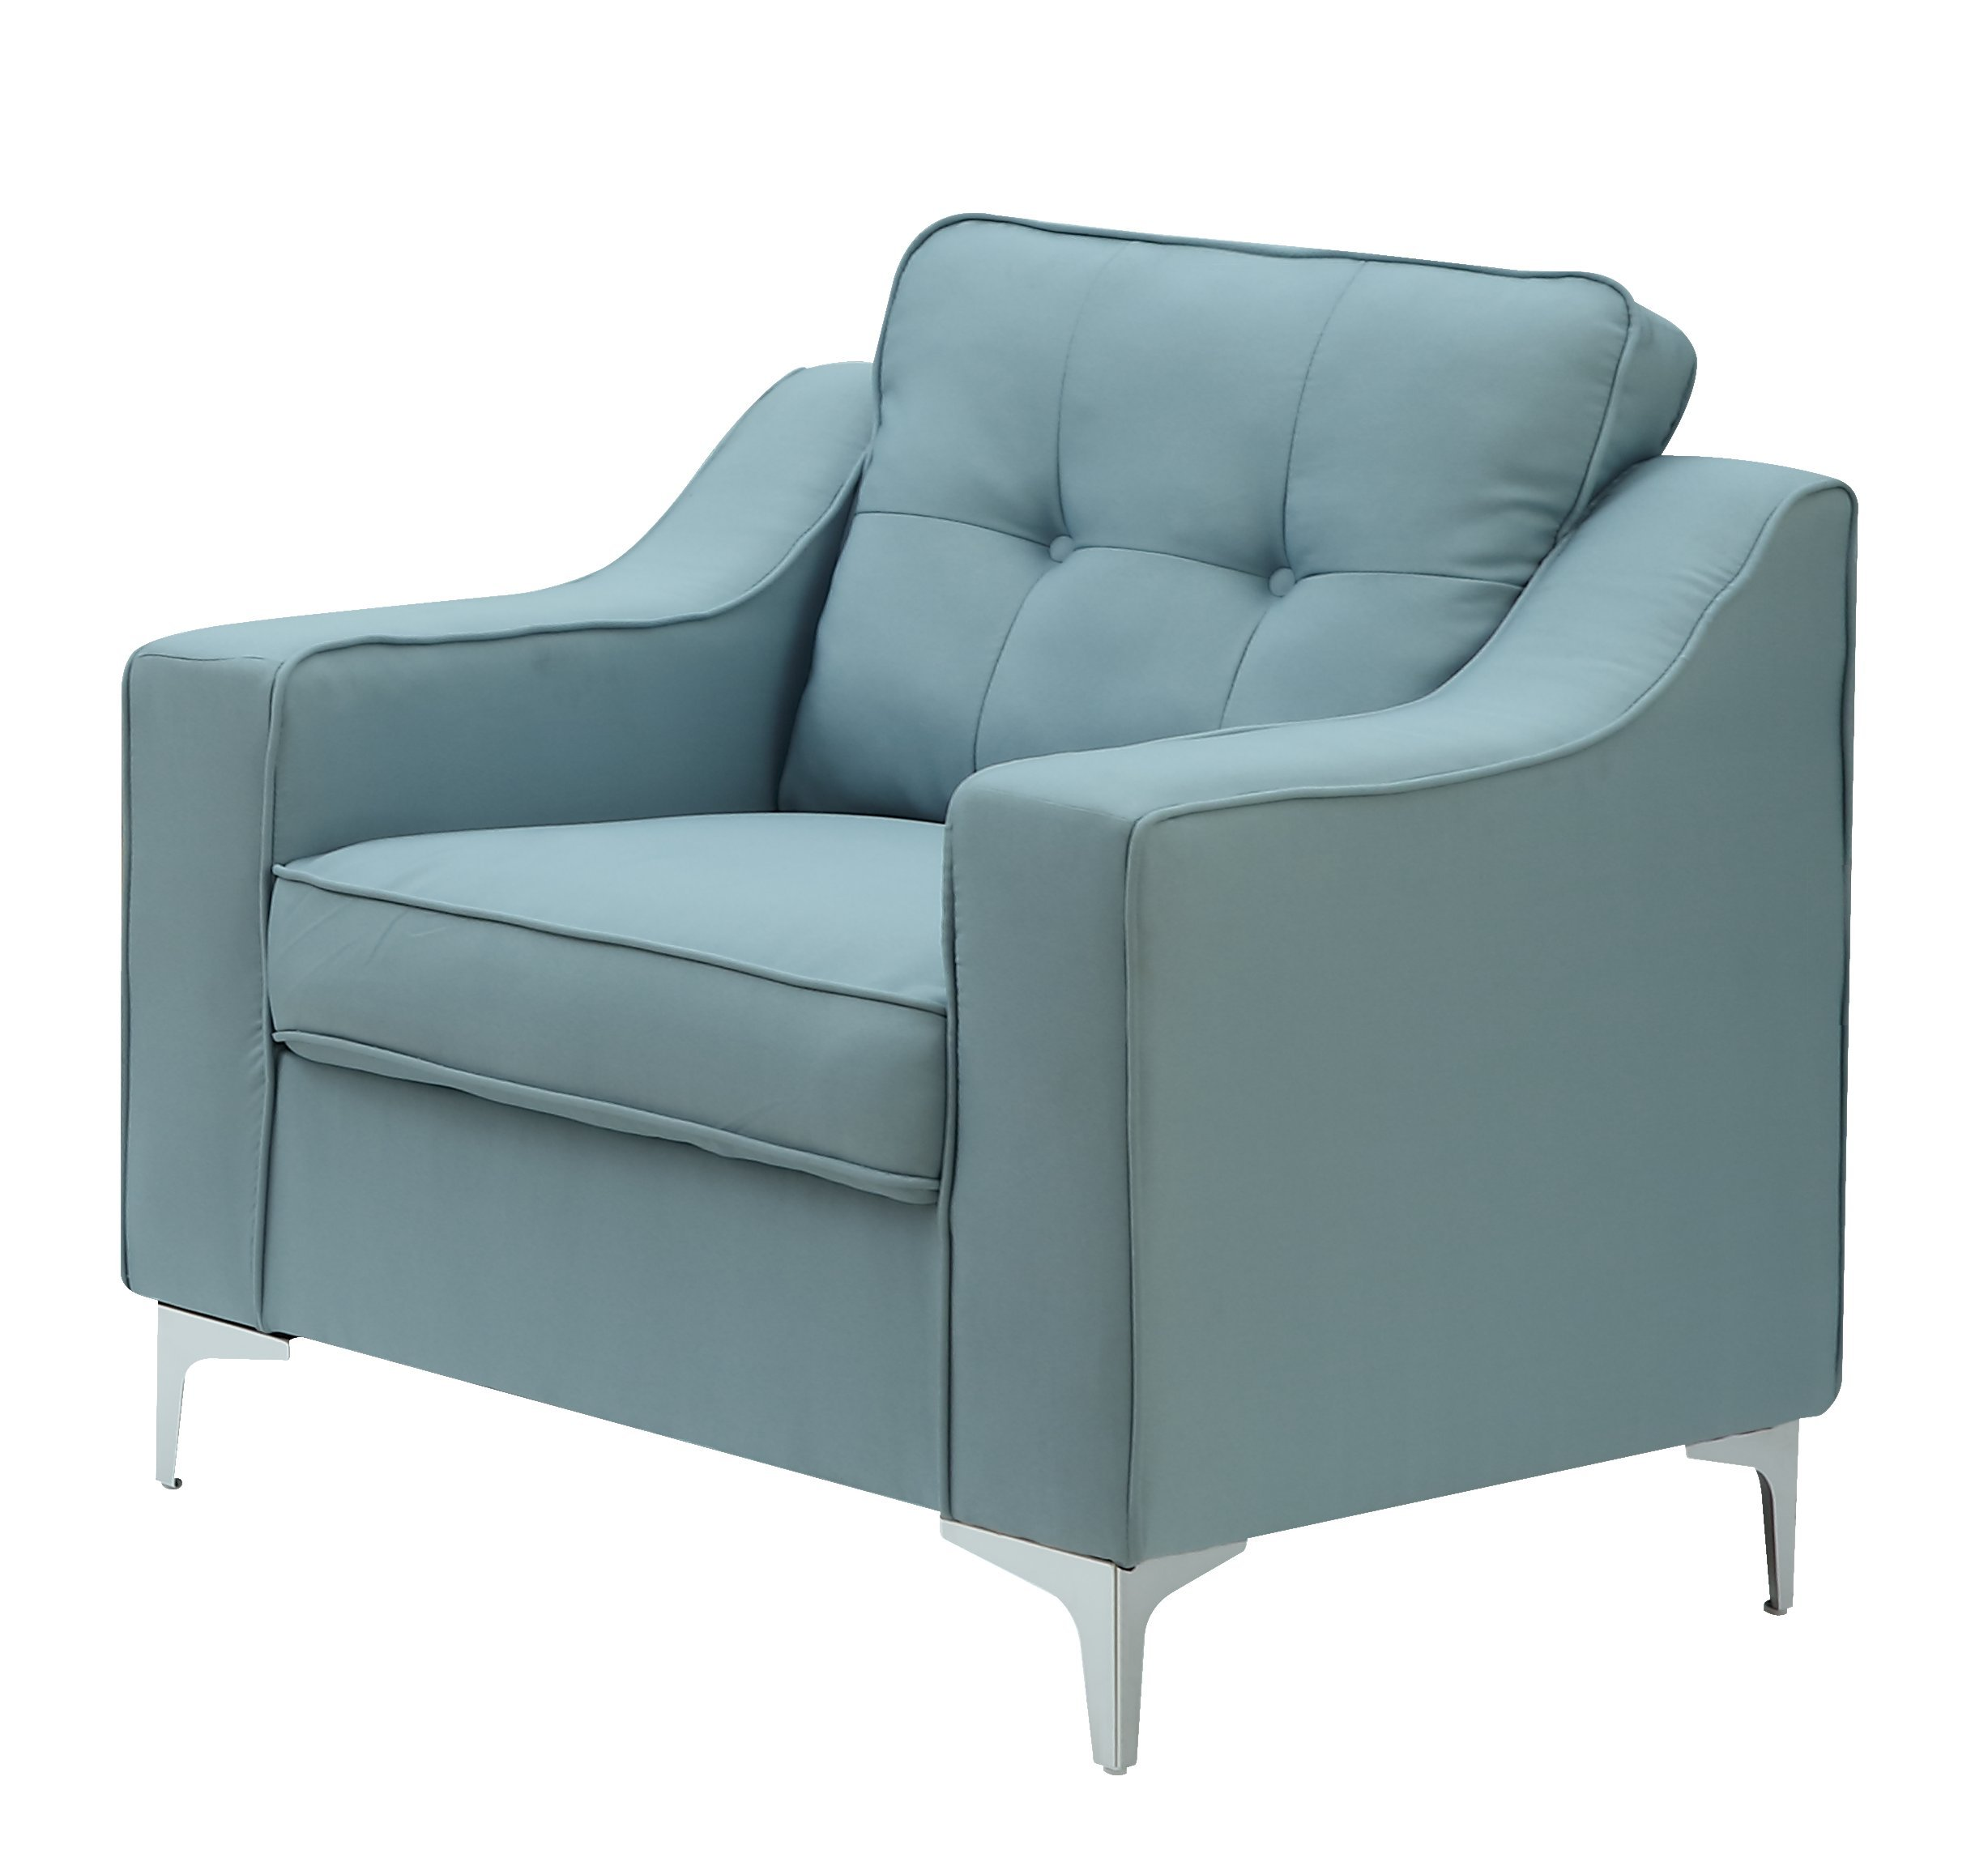 Furniture World Corbu Armchair, Turquoise